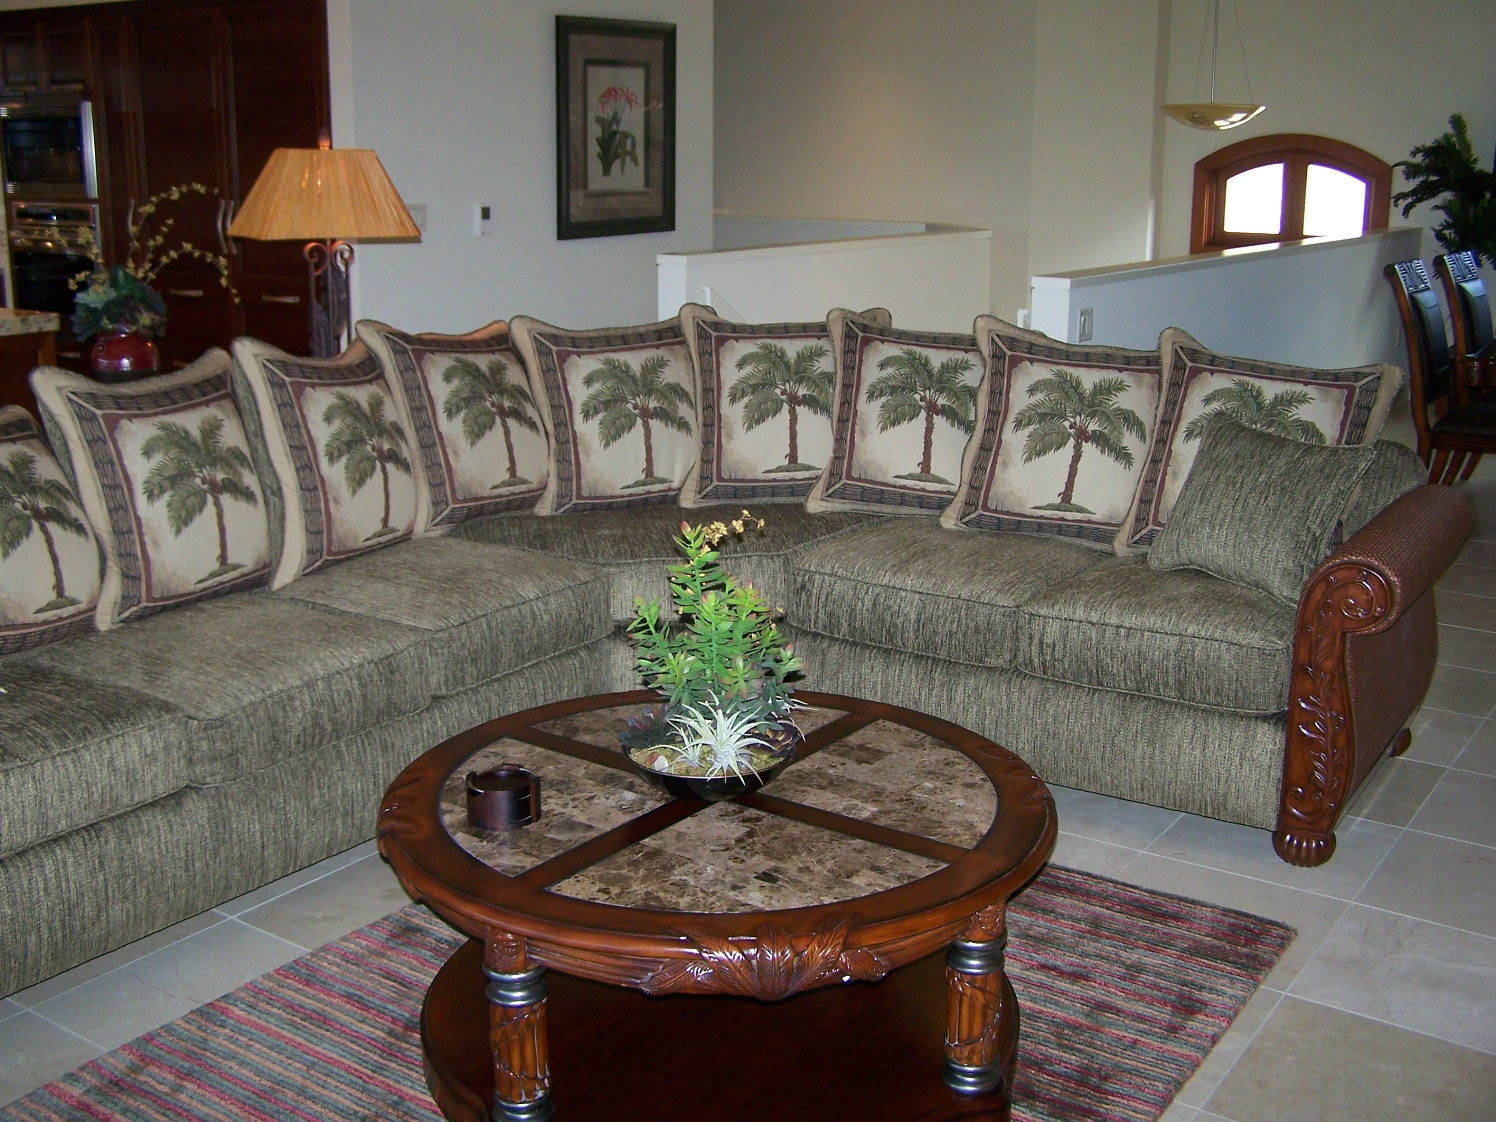 Kimos Furniture Maui image 12